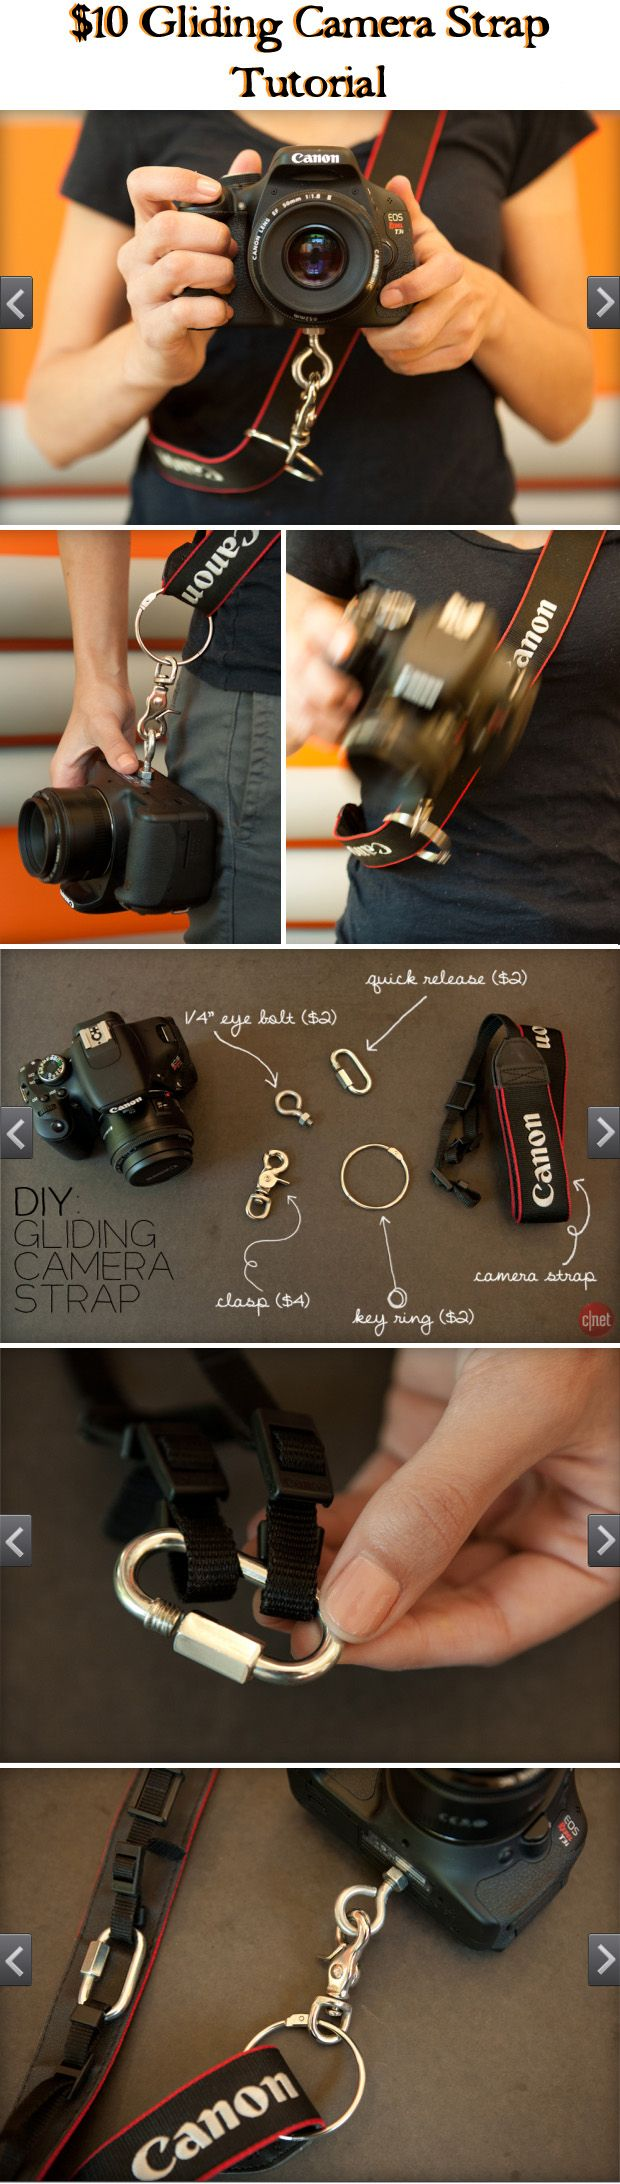 CAMERA ACCESSORIES :: $10 DIY Gliding Camera Strap (VIDEO) Tutorial :: These straps go for 60+ bucks. Learn how to make one for less than 10! Super easy! Now you can wear your camera across your body (not weighing on your neck) & have it at the ready w/ ease! | #cnet